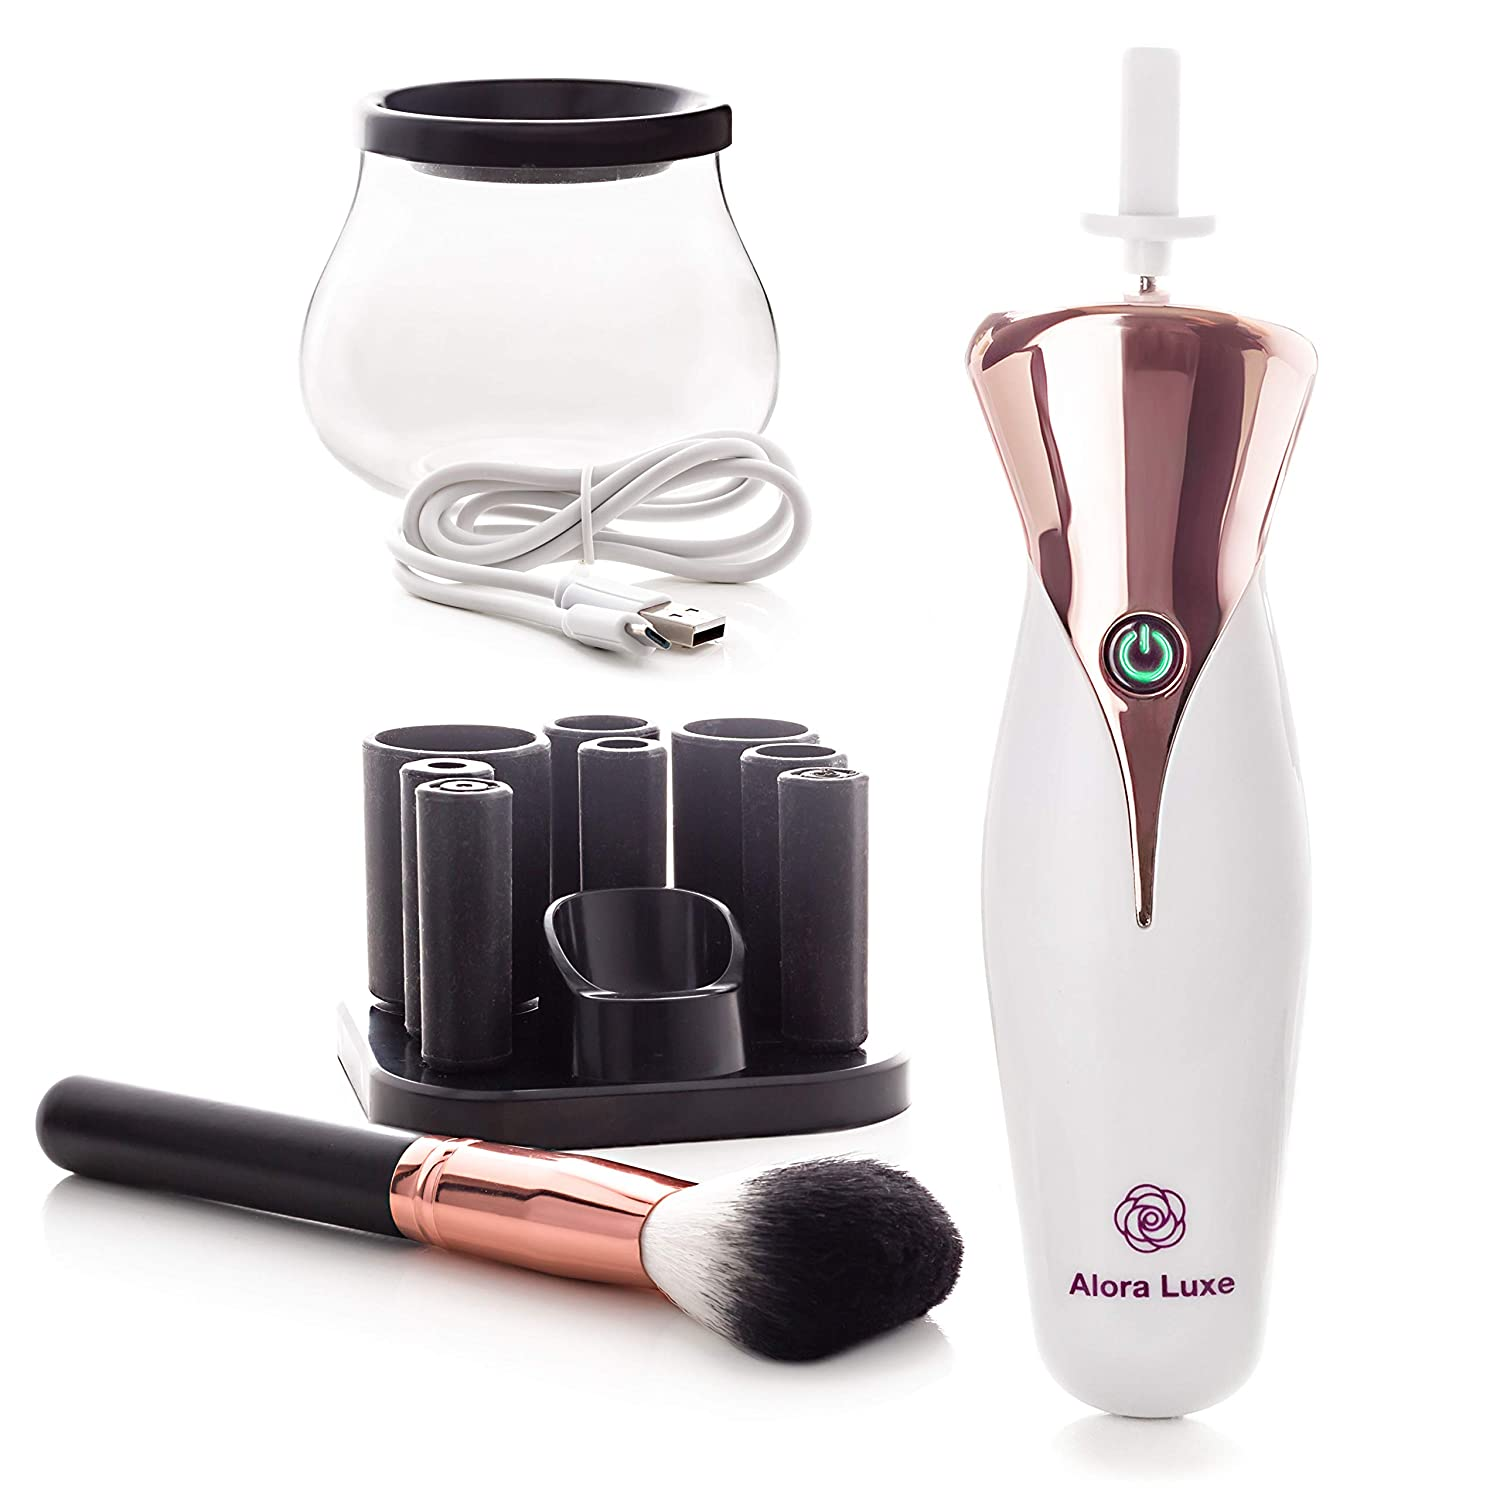 Makeup Brush Cleaner and Dryer by Alora Luxe – Electric Automated Spinner Cleaning Machine - USB Rechargeable Premium Makeup Cleaner for Brushes : Bonus Makeup Brush Included